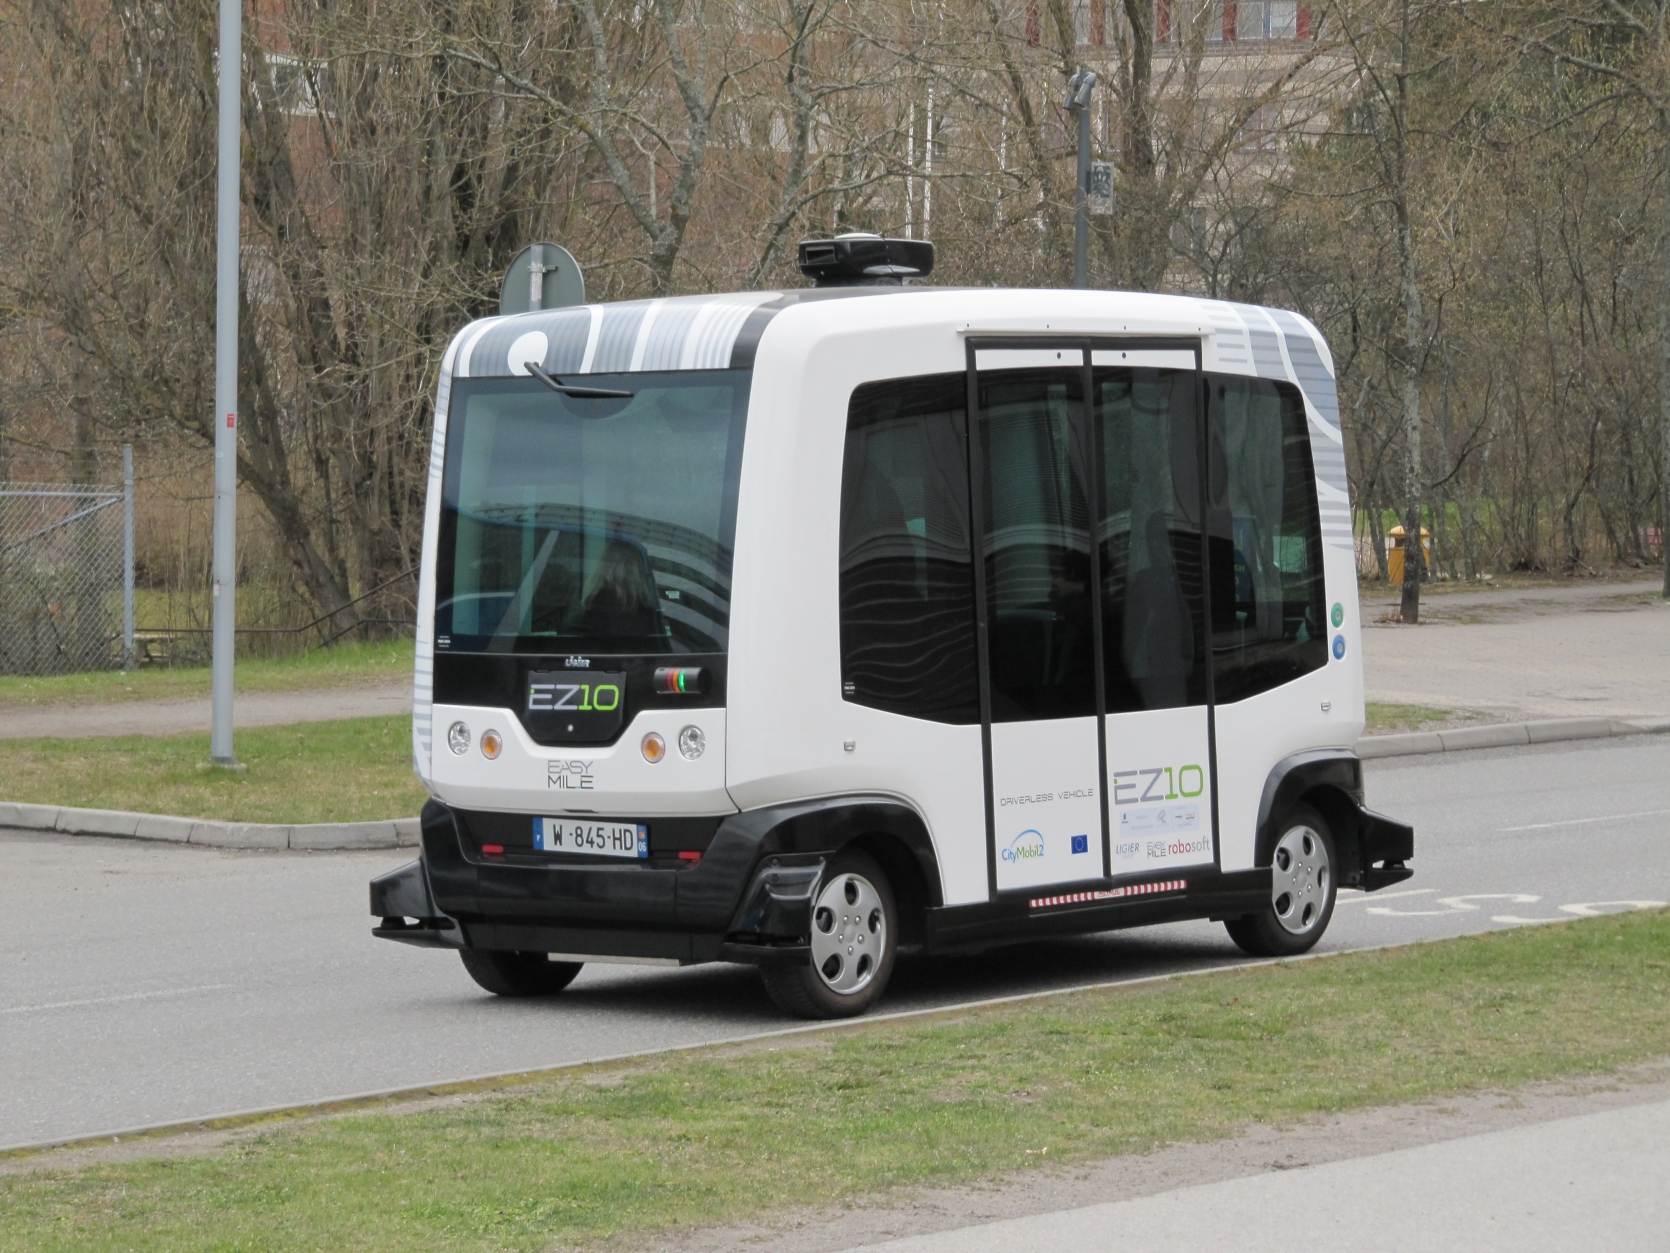 A MOVE FOR DRIVERLESS MASS TRANSIT HITS SPEED BUMPS